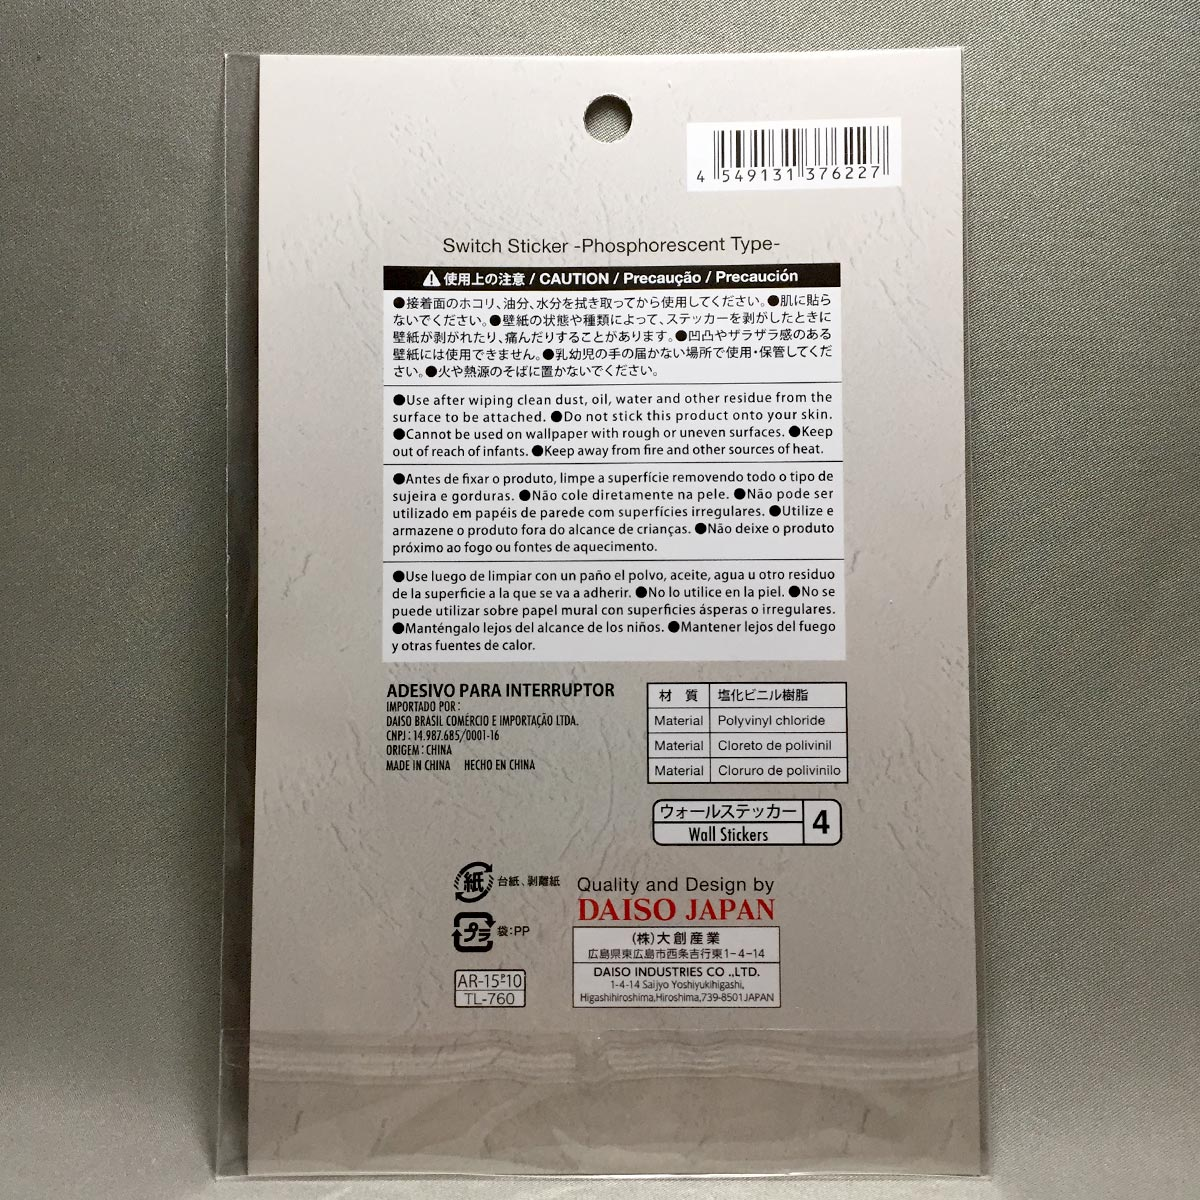 Switch Sticker Phosphorescent Type - Back Packaging